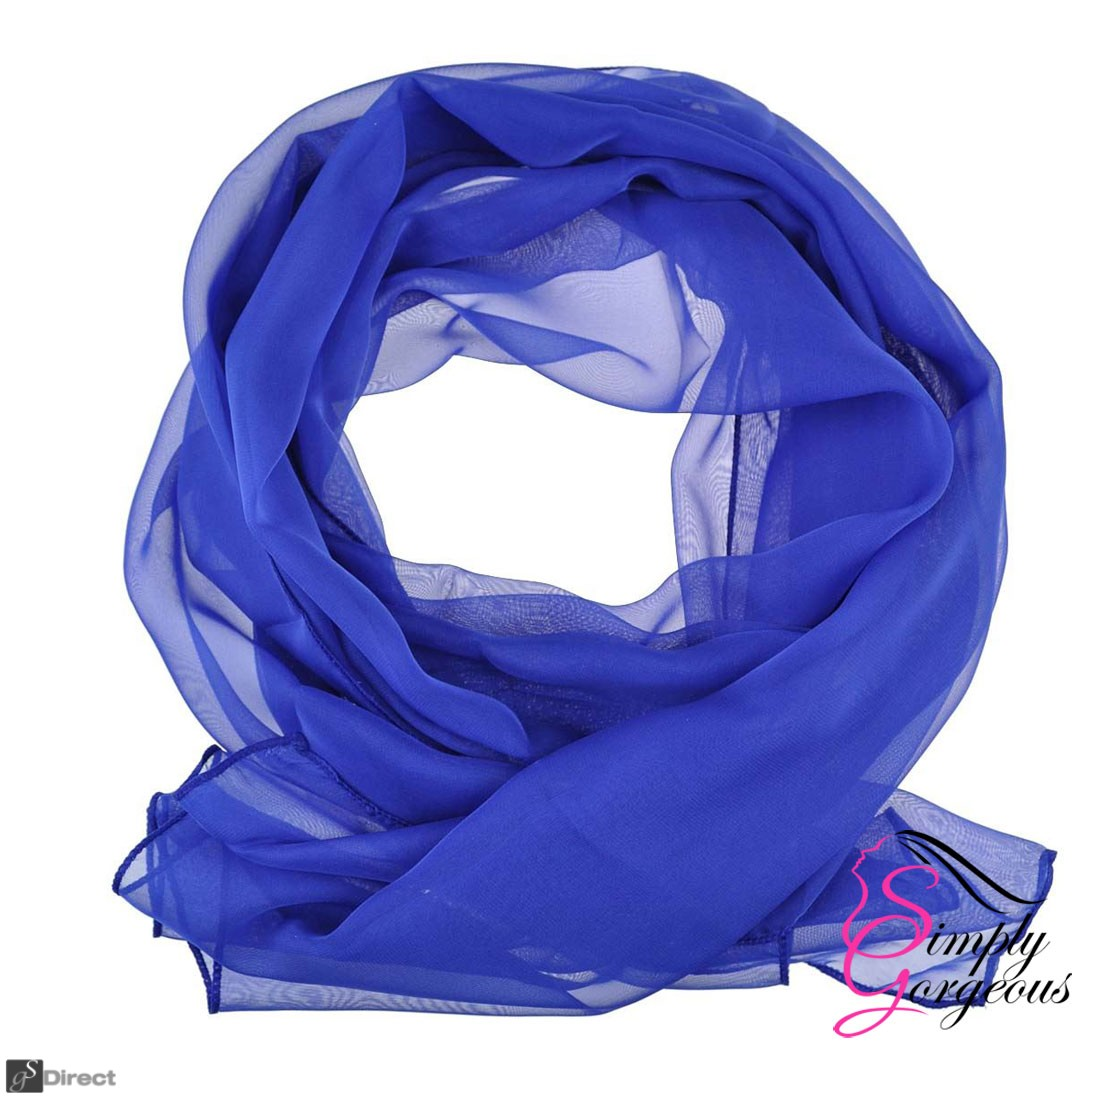 Classic Plain Chiffon Scarf Silk Feel Soft Neck lady Shawl Hijab Scarves - Blue